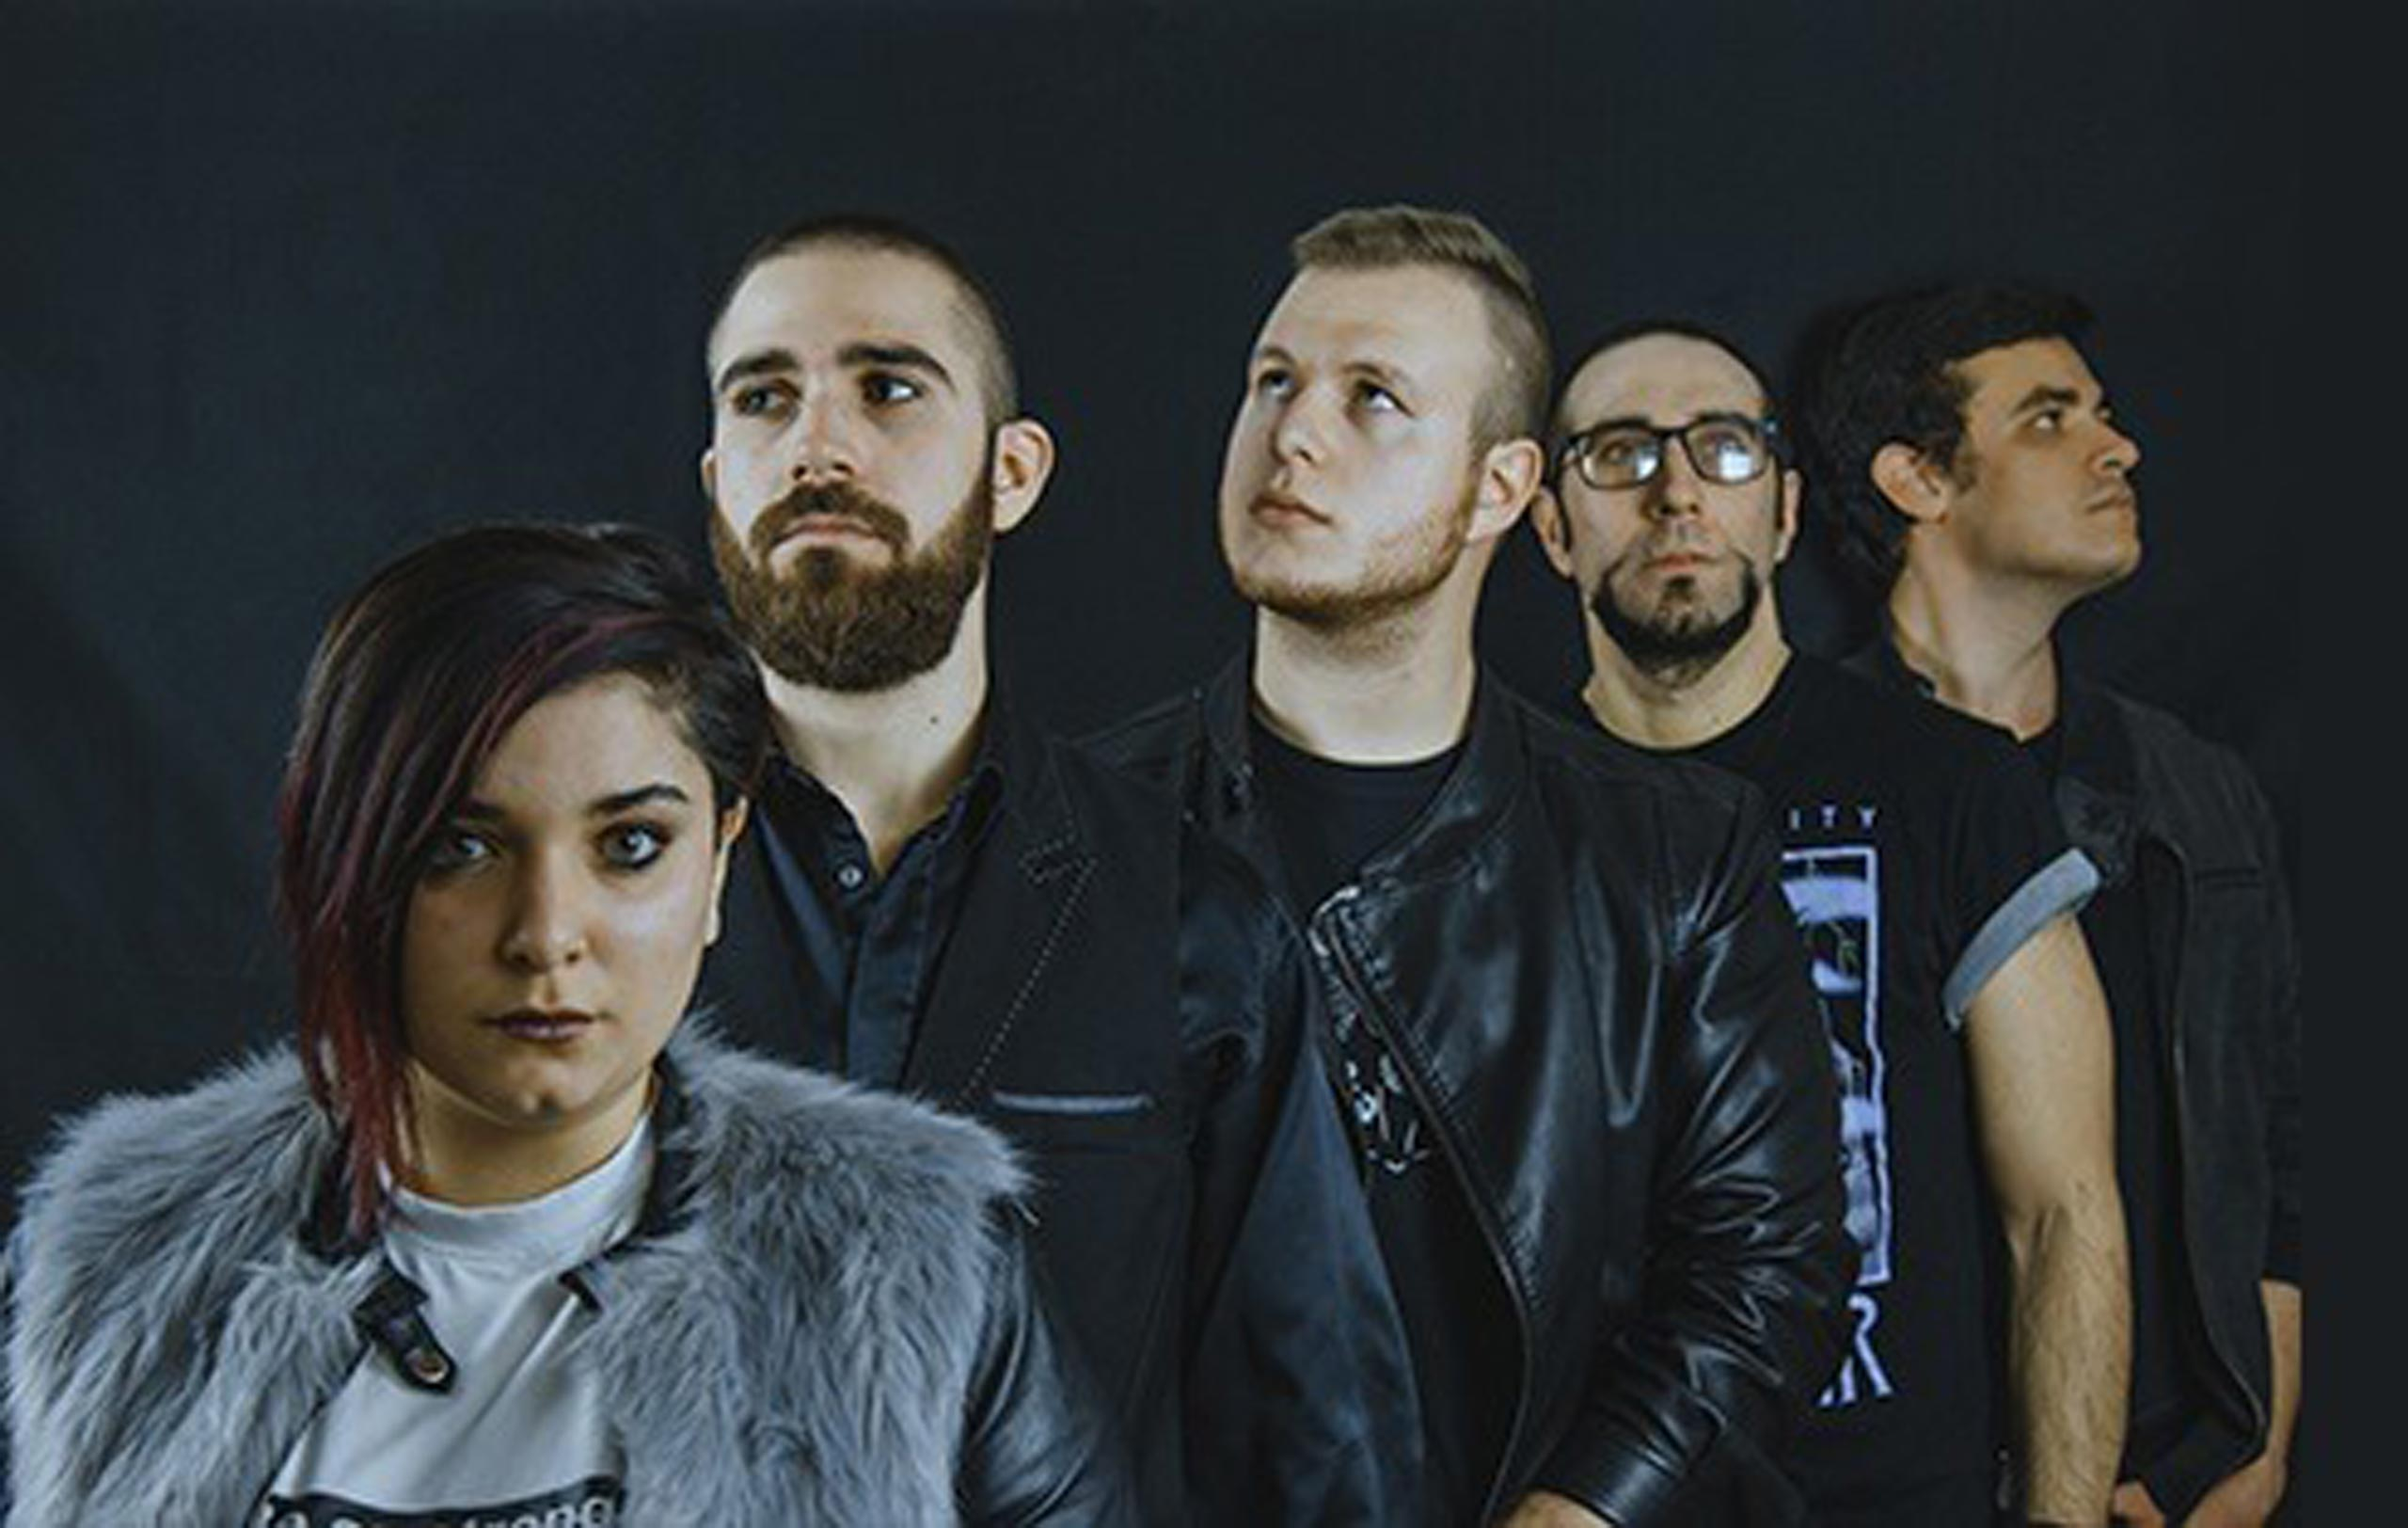 The Sunrise nel roster della Wormholedeath